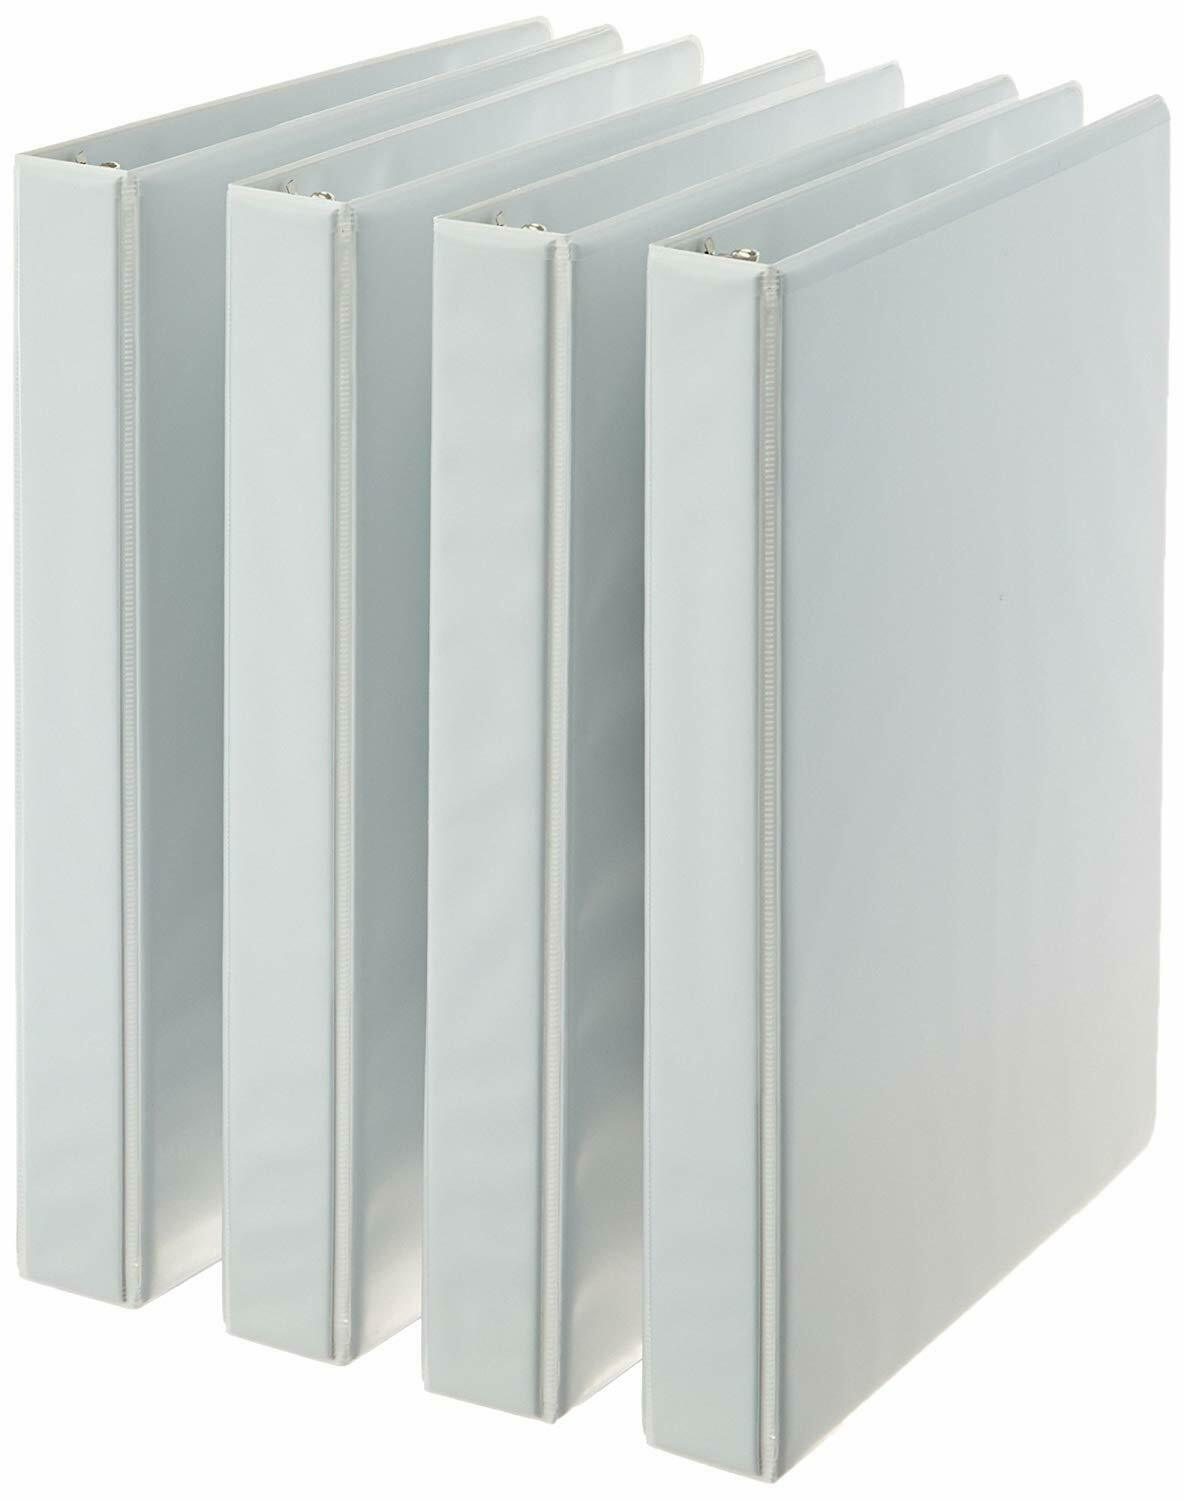 Amazonbasics 3-Ring Binder, 1 Inch - 4-Pack  *New*